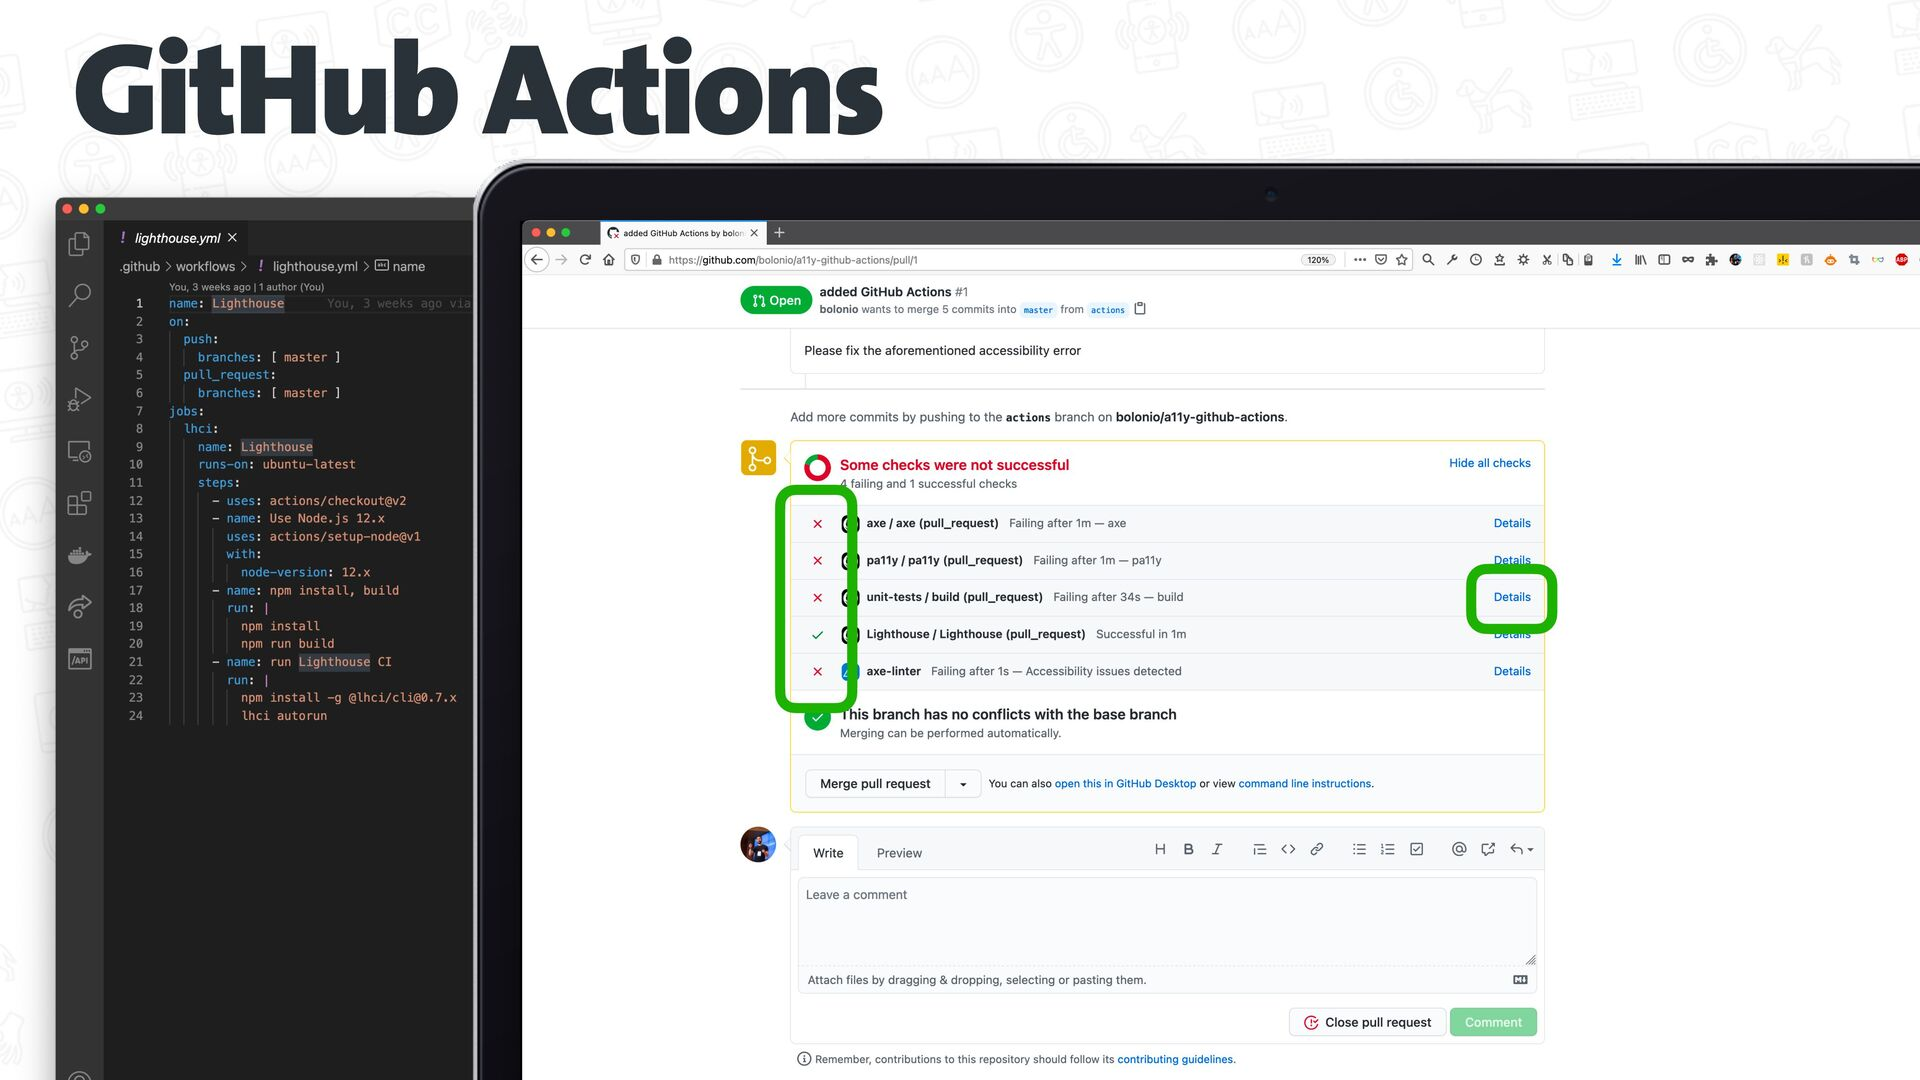 Do manual tests and simulation tests